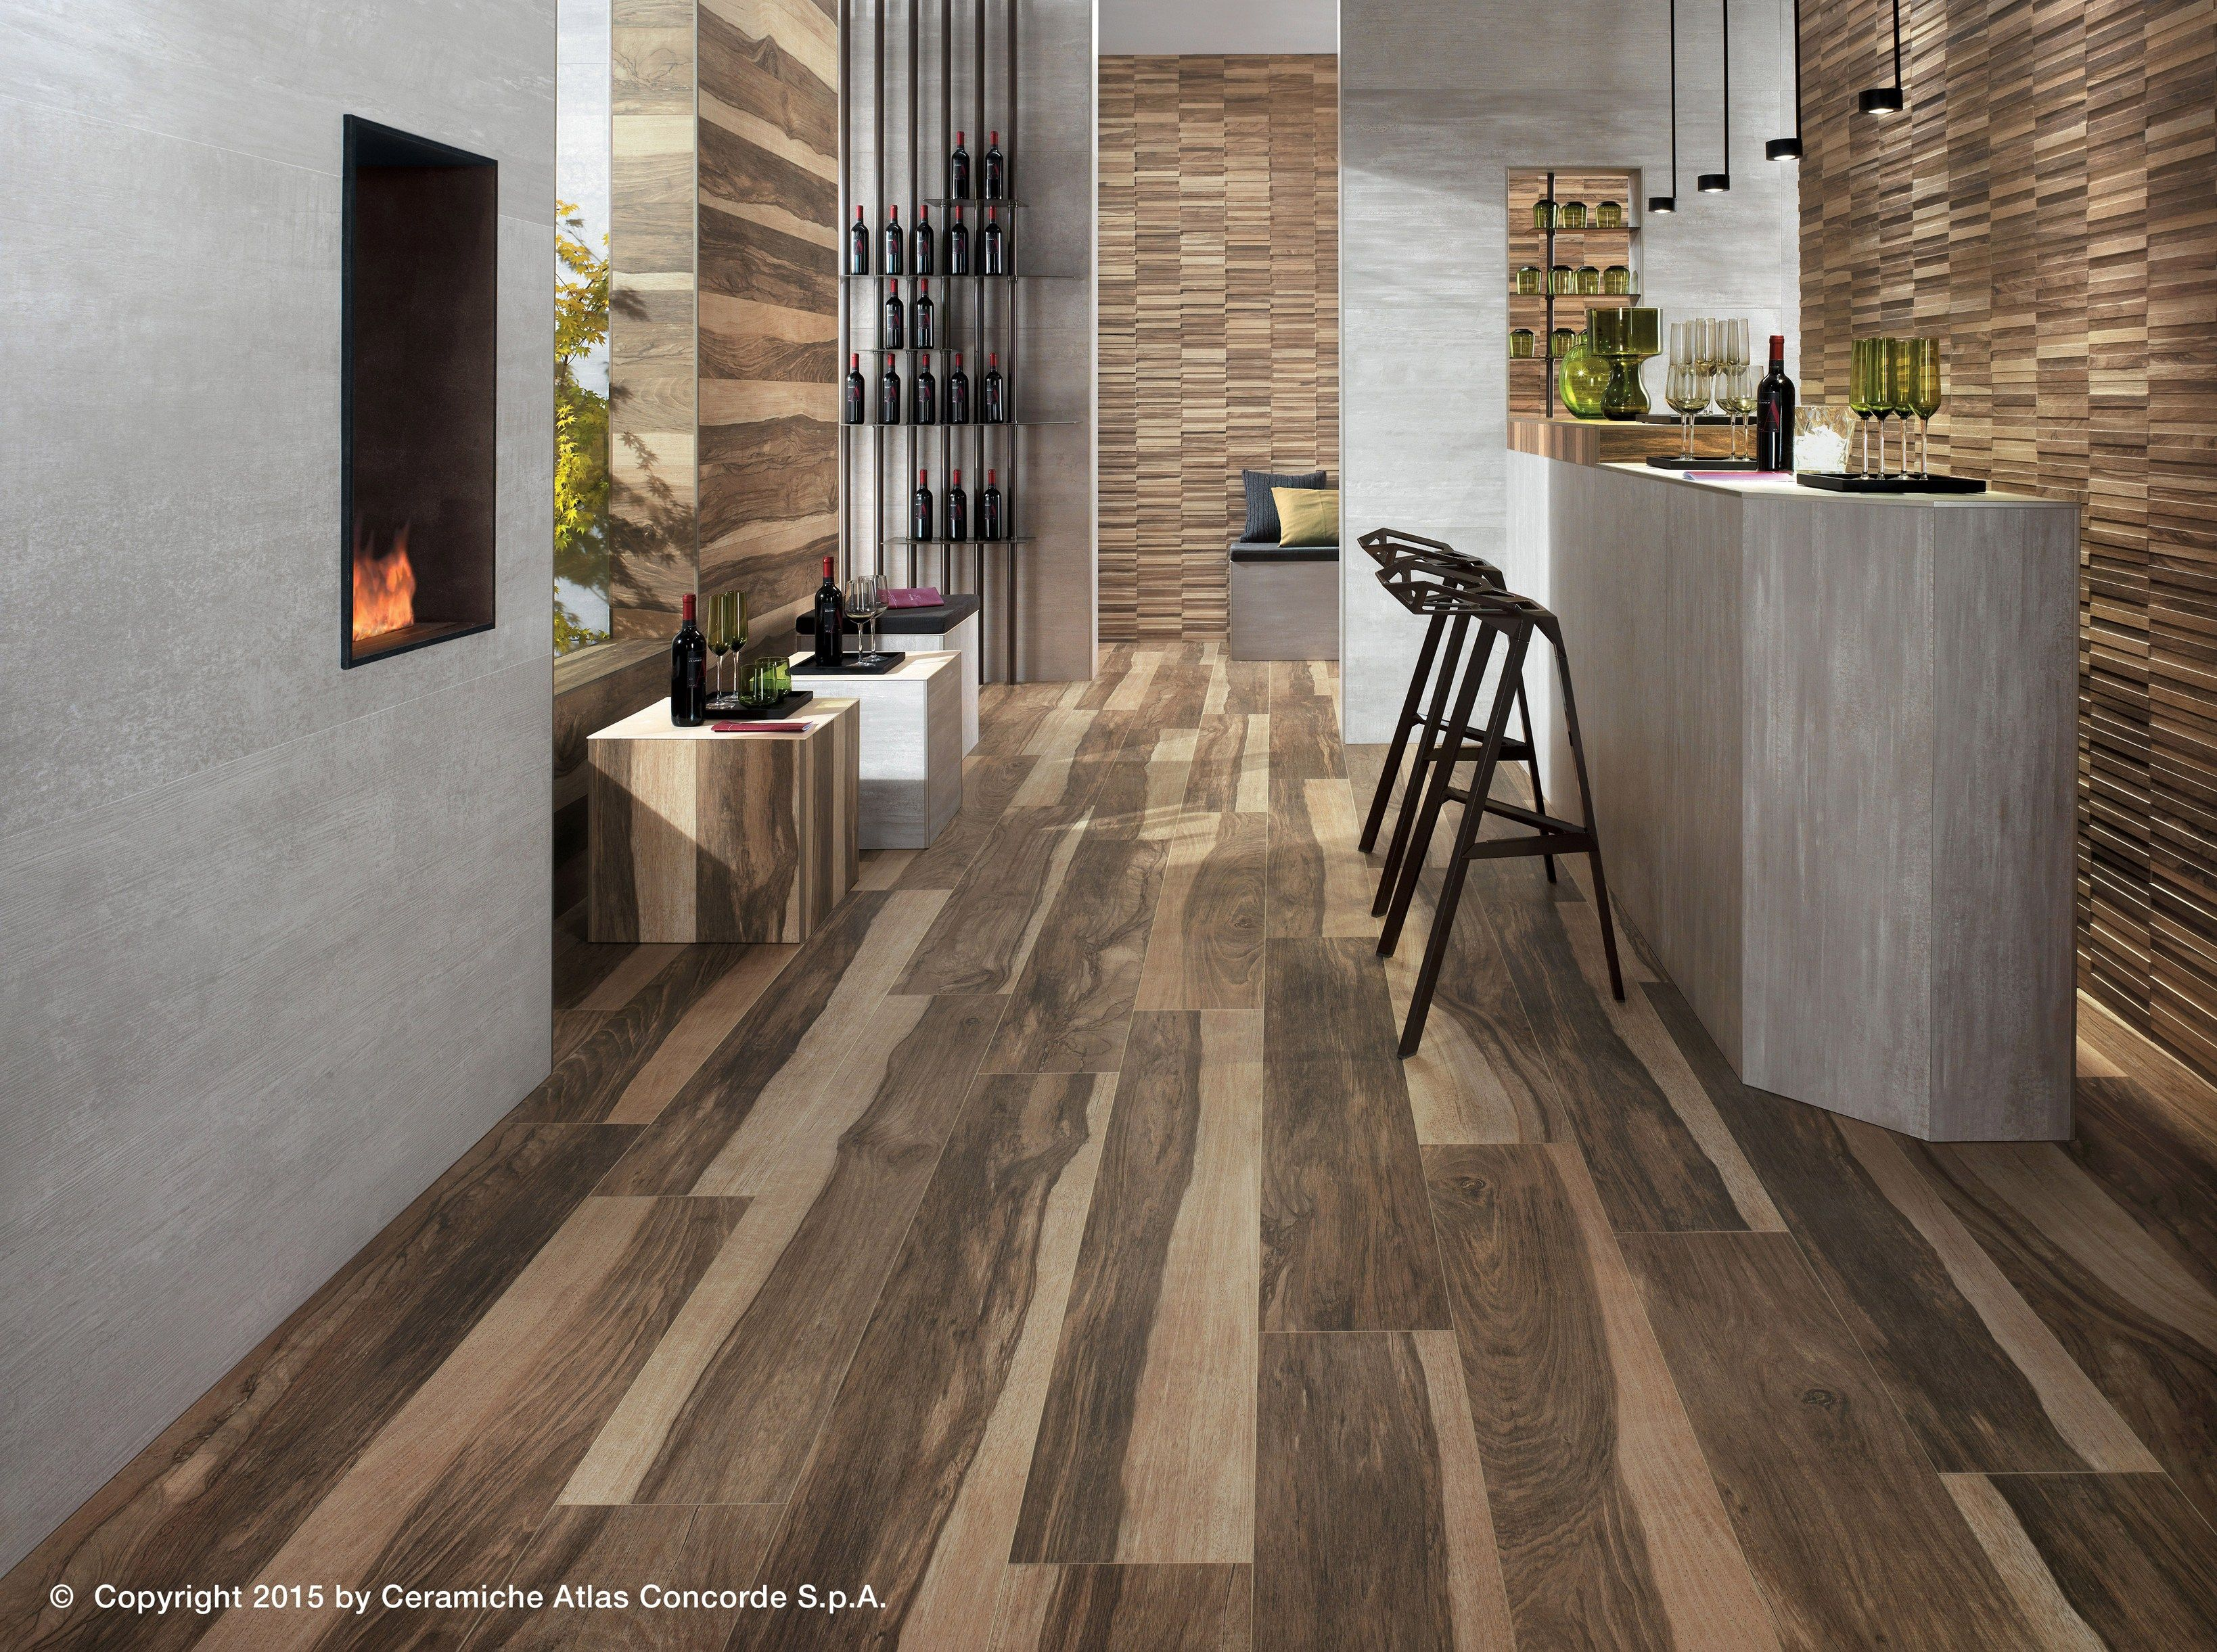 idea use gray tiles like these around fireplace wood